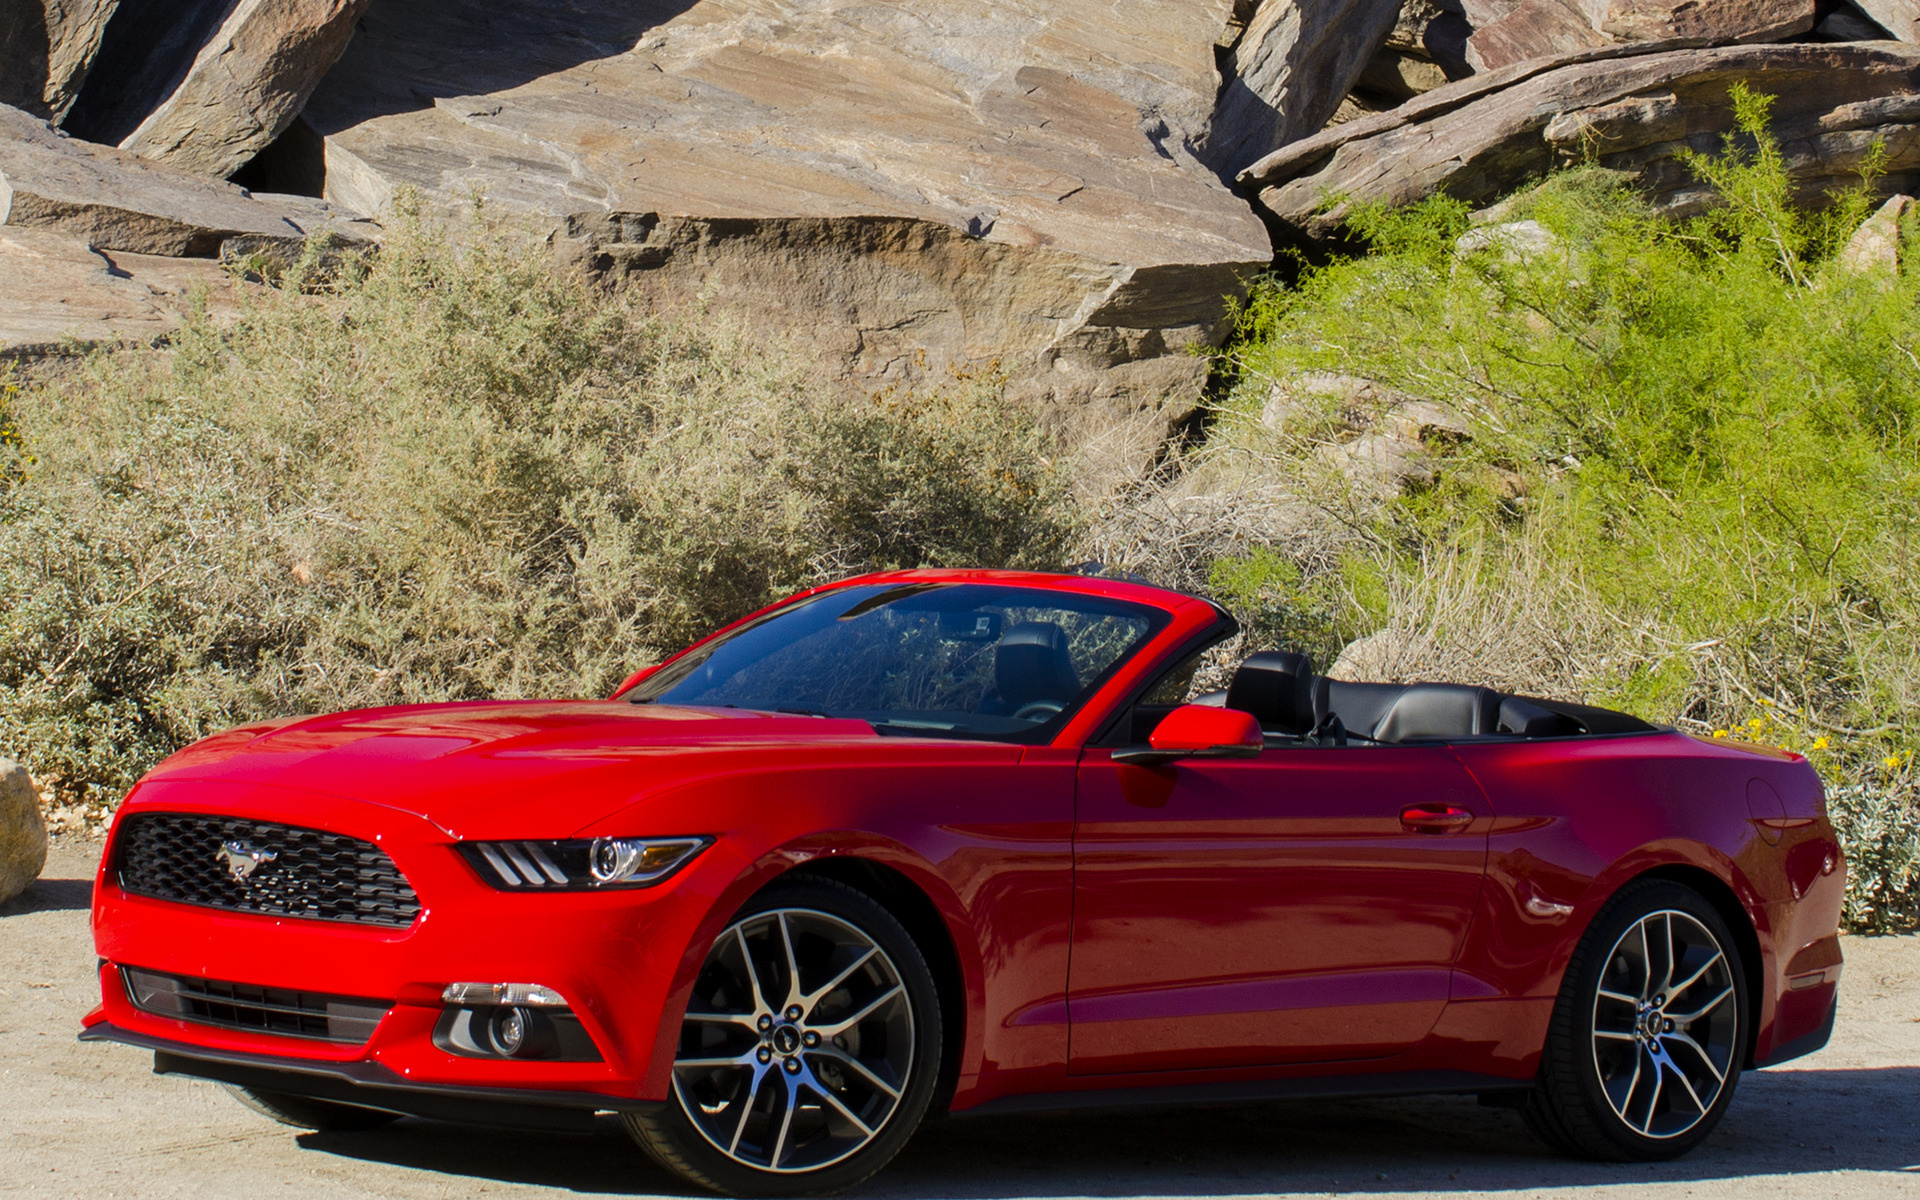 Mustang Car Wallpaper Desktop 2015 Ford Mustang Ecoboost Convertible Wallpapers And Hd